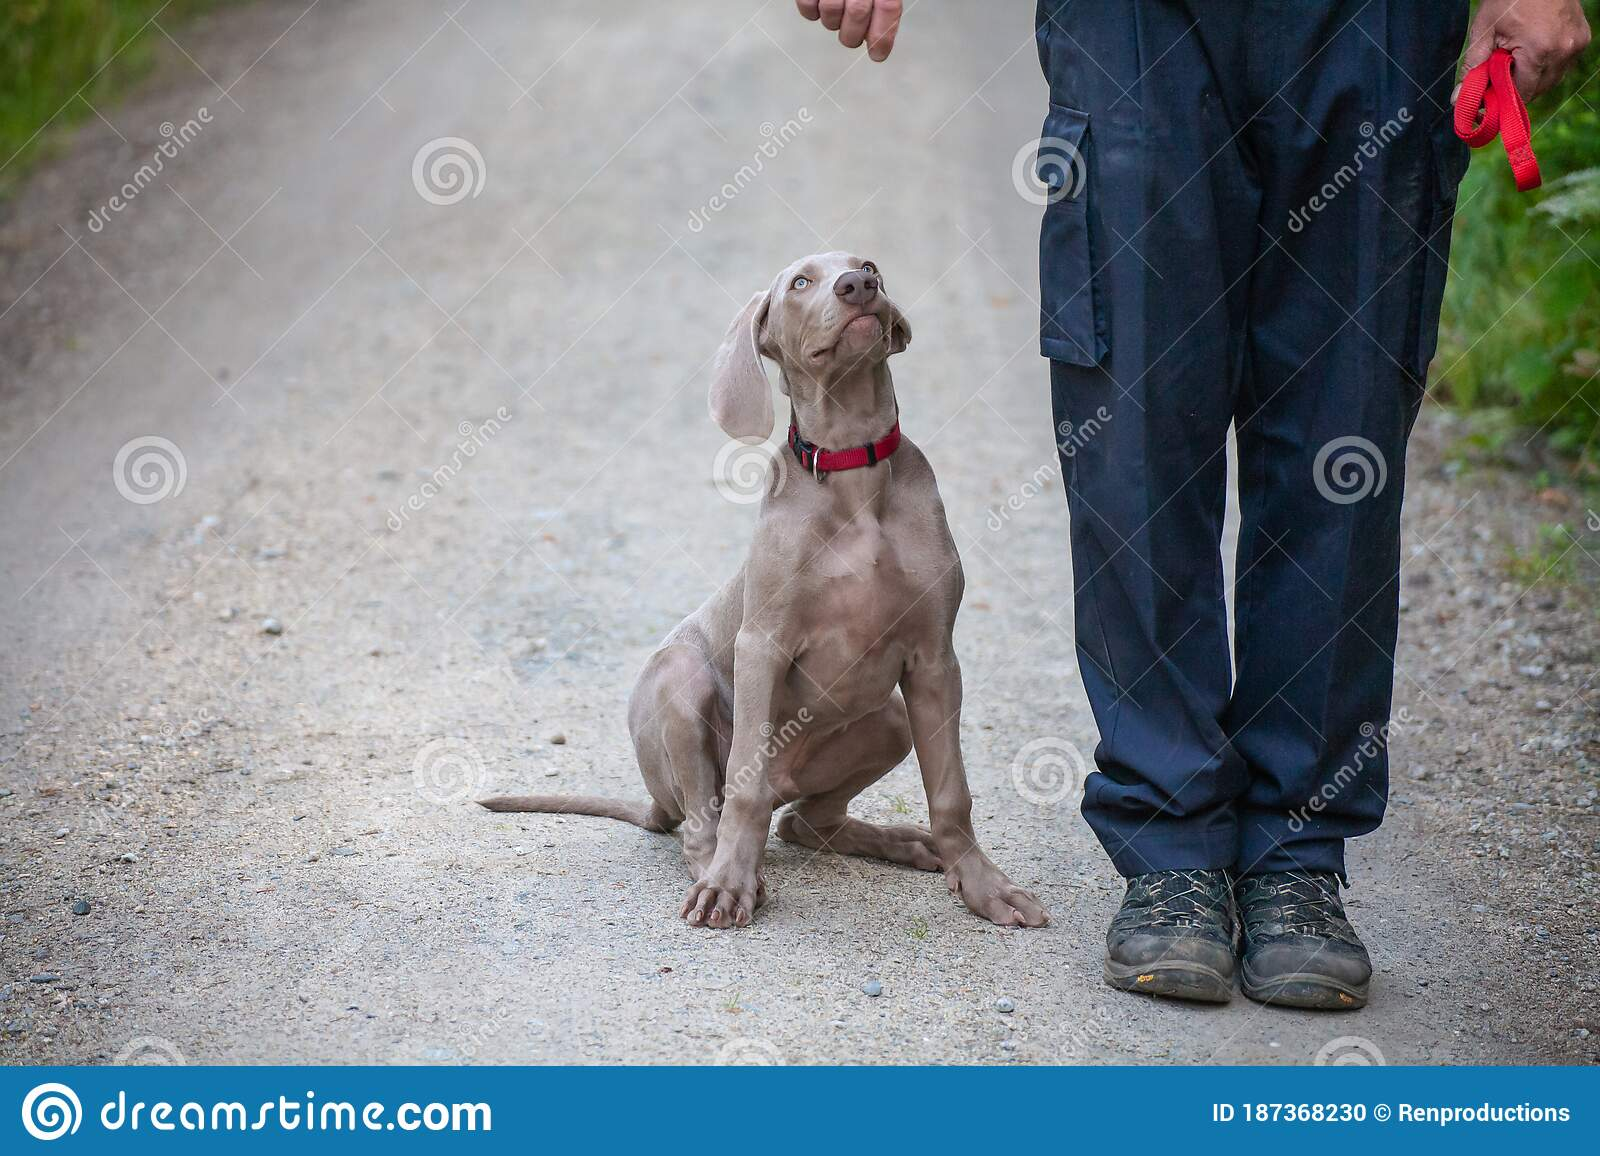 Weimaraner Puppy Takes His First Steps In Training Stock Photo Image Of Cute Medicine 187368230